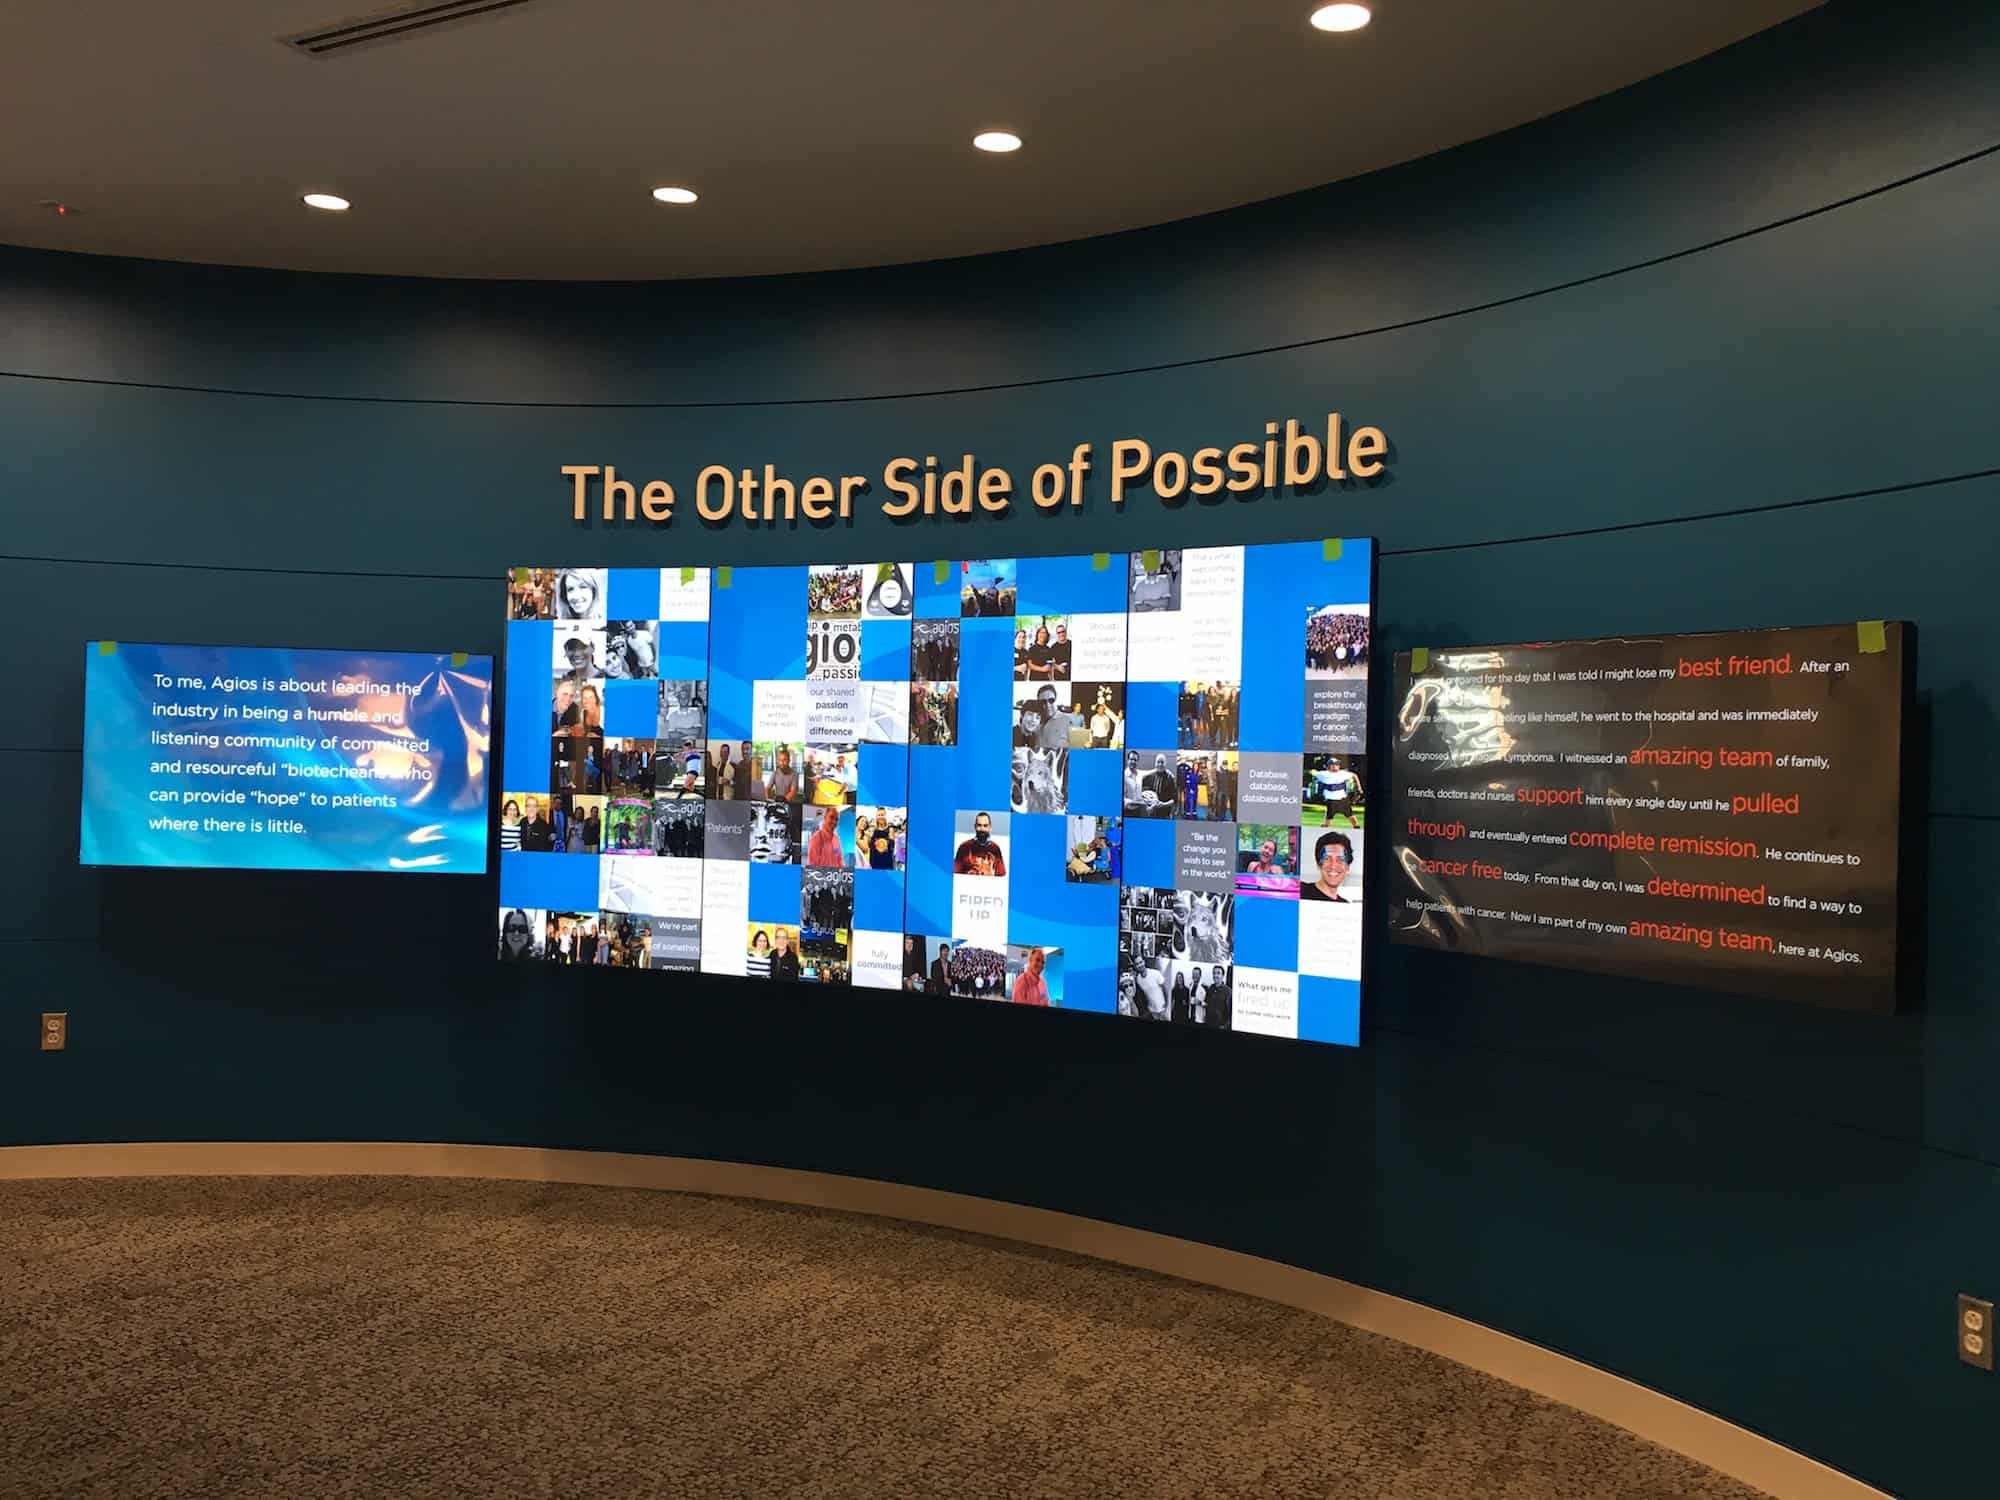 All About LED Video Walls – Cost, Usage, Installation & More